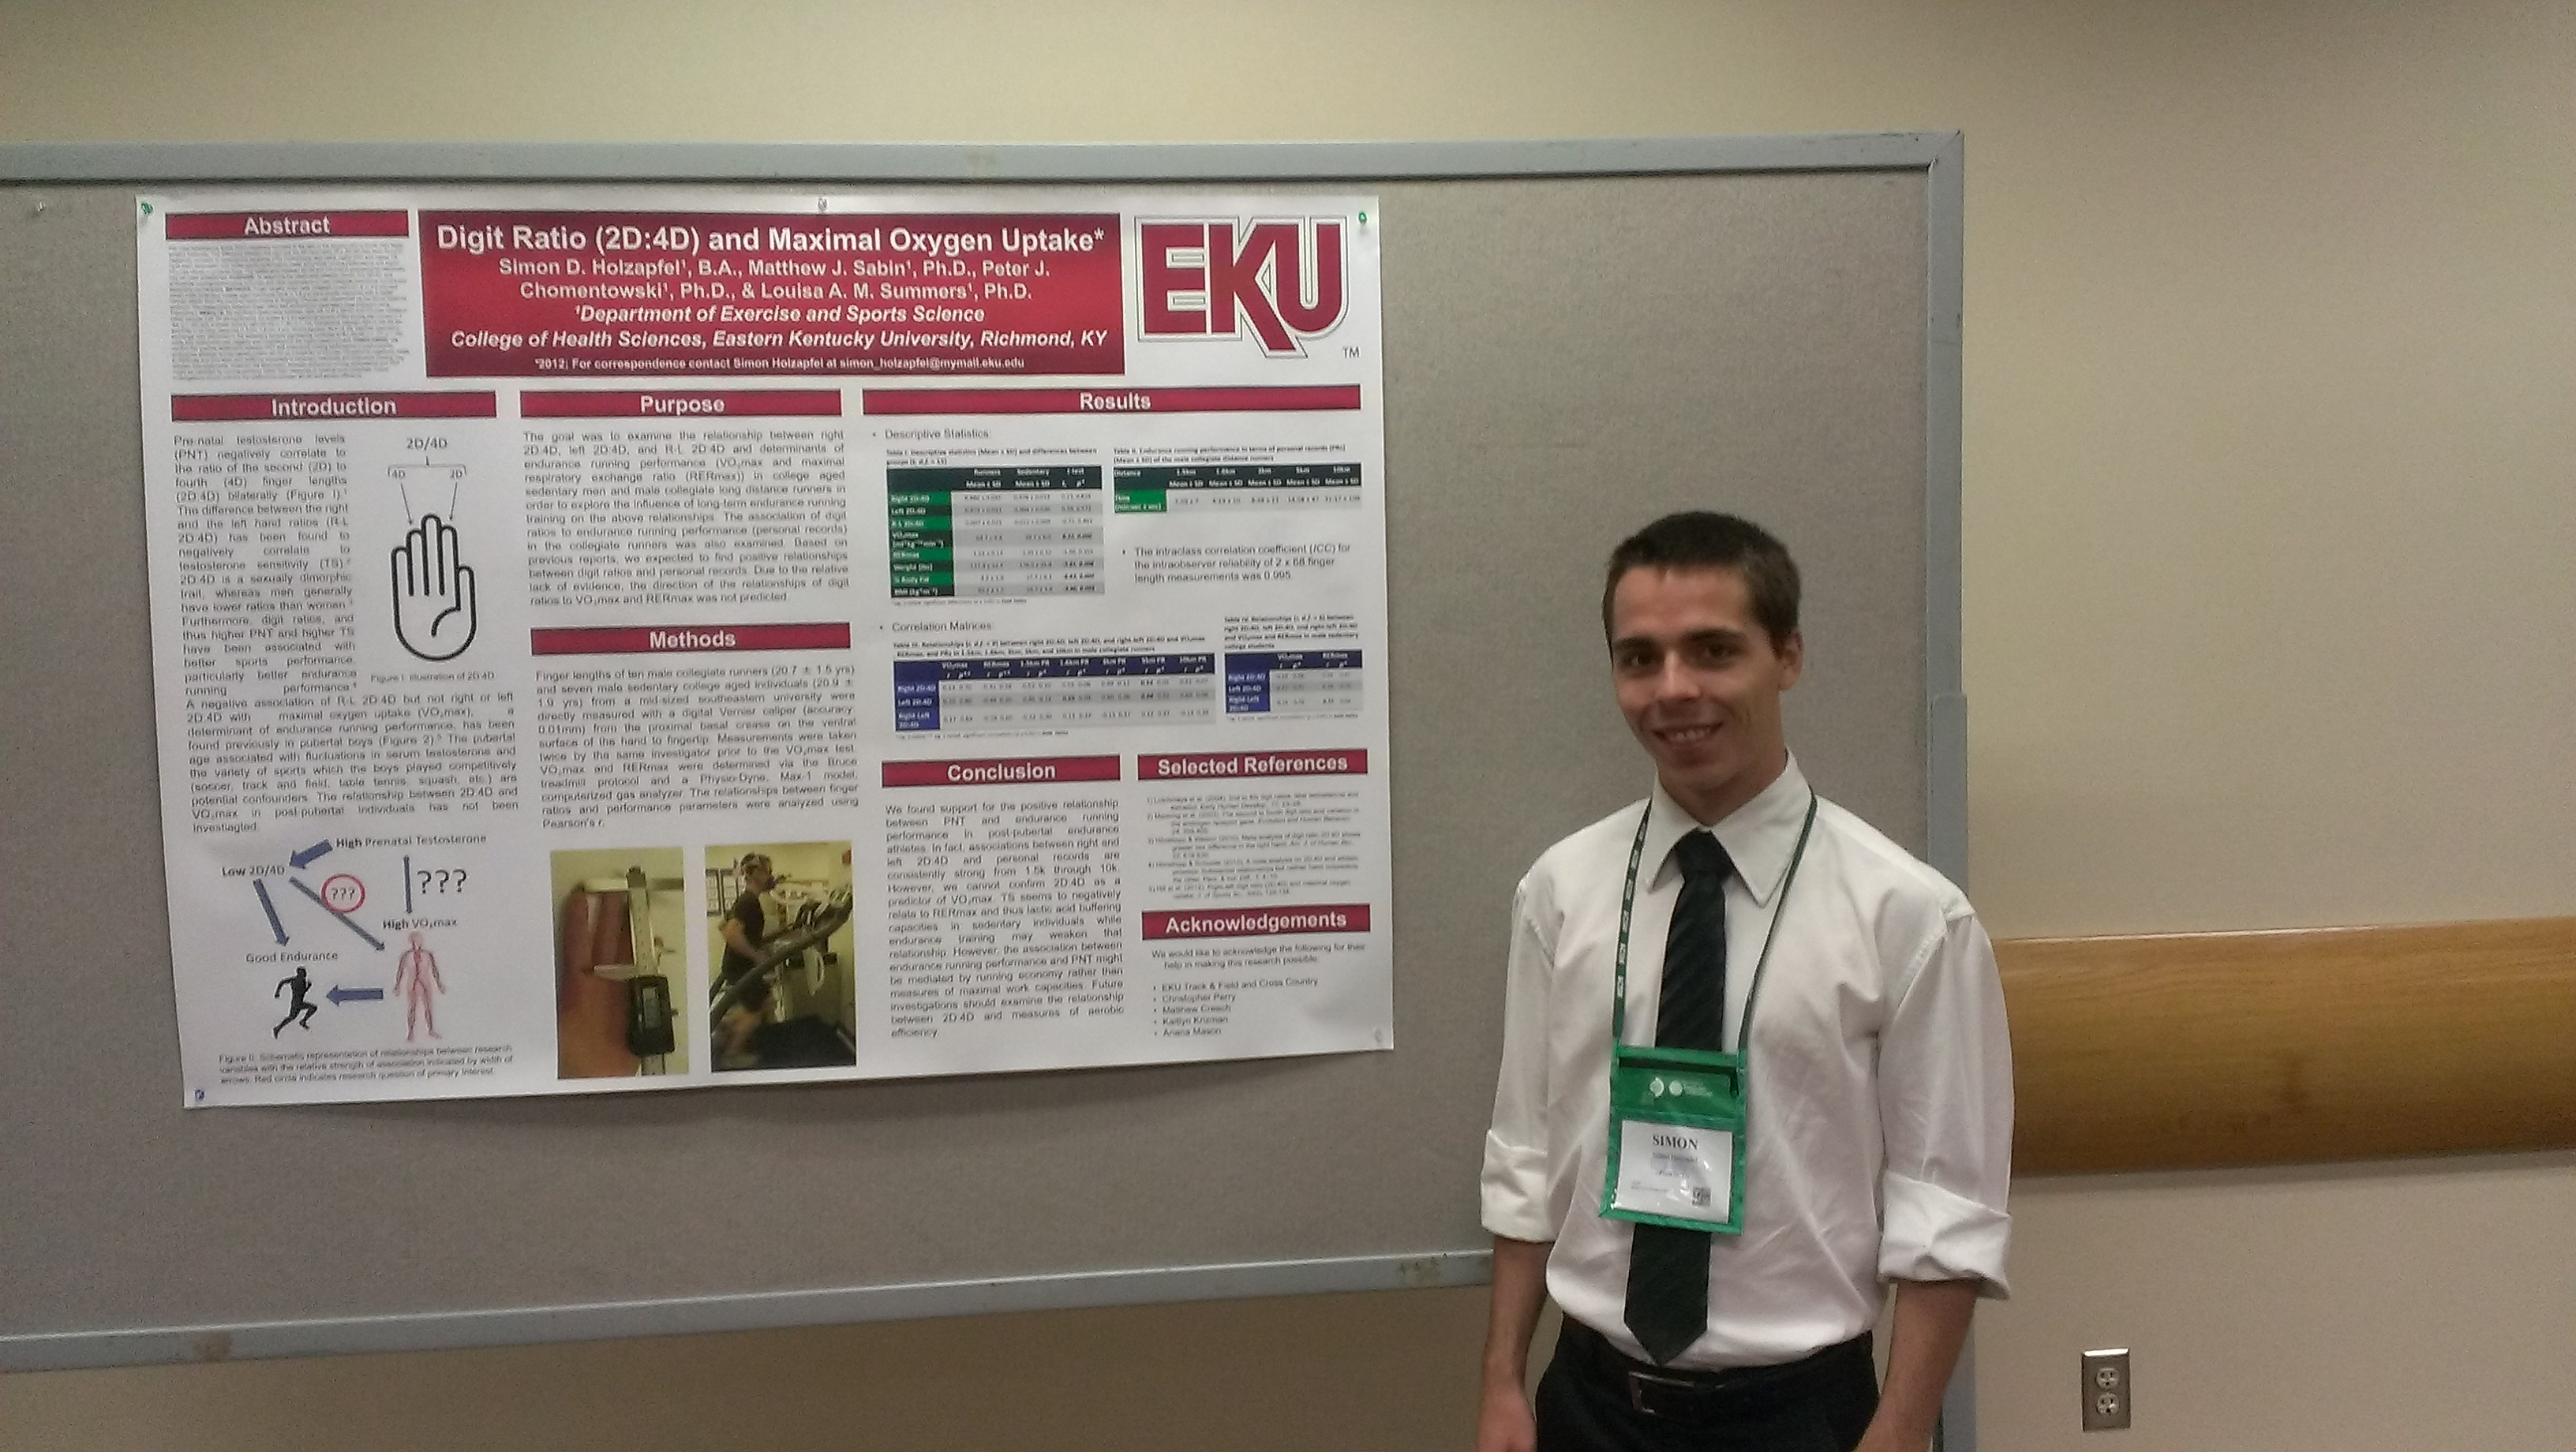 Holzapfel Presents At Acsm Conference Exercise Amp Sports